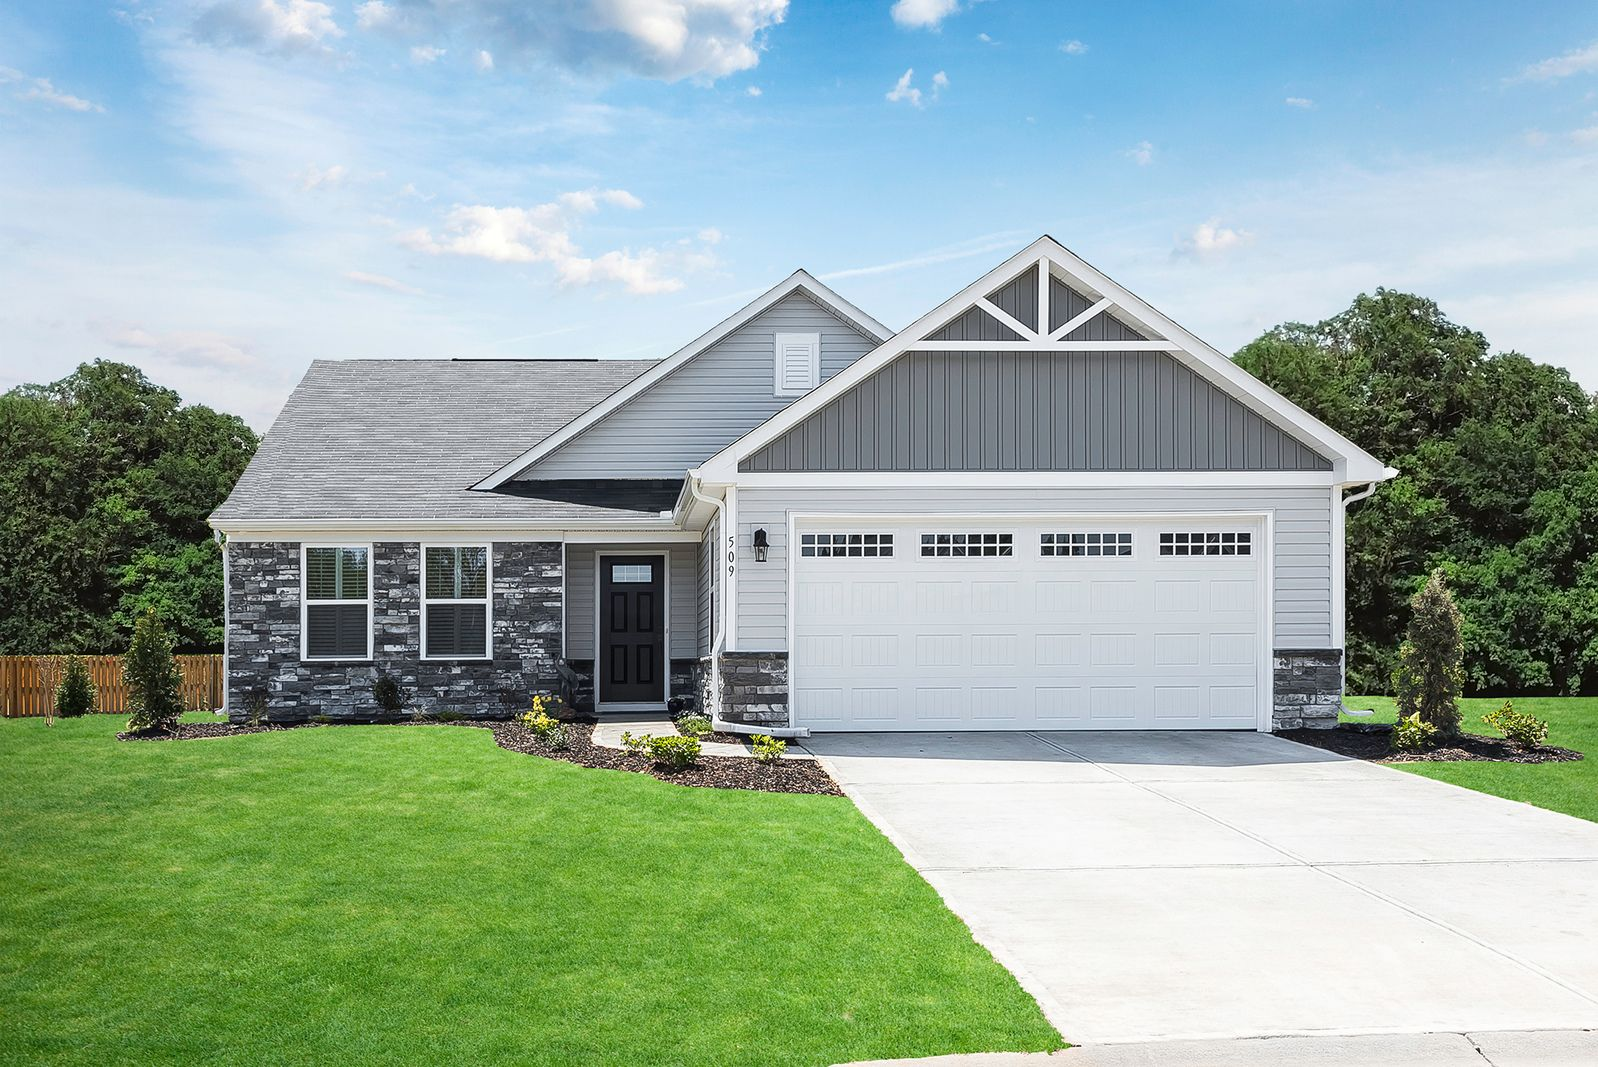 Own an affordable home with included lawn maintenance:With convenient features and an ideal location off Hwy. 9 in Boiling Springs, North Springsoffers new ranch homes at a better value than used homes in the area.Schedule a visit to North Springs!